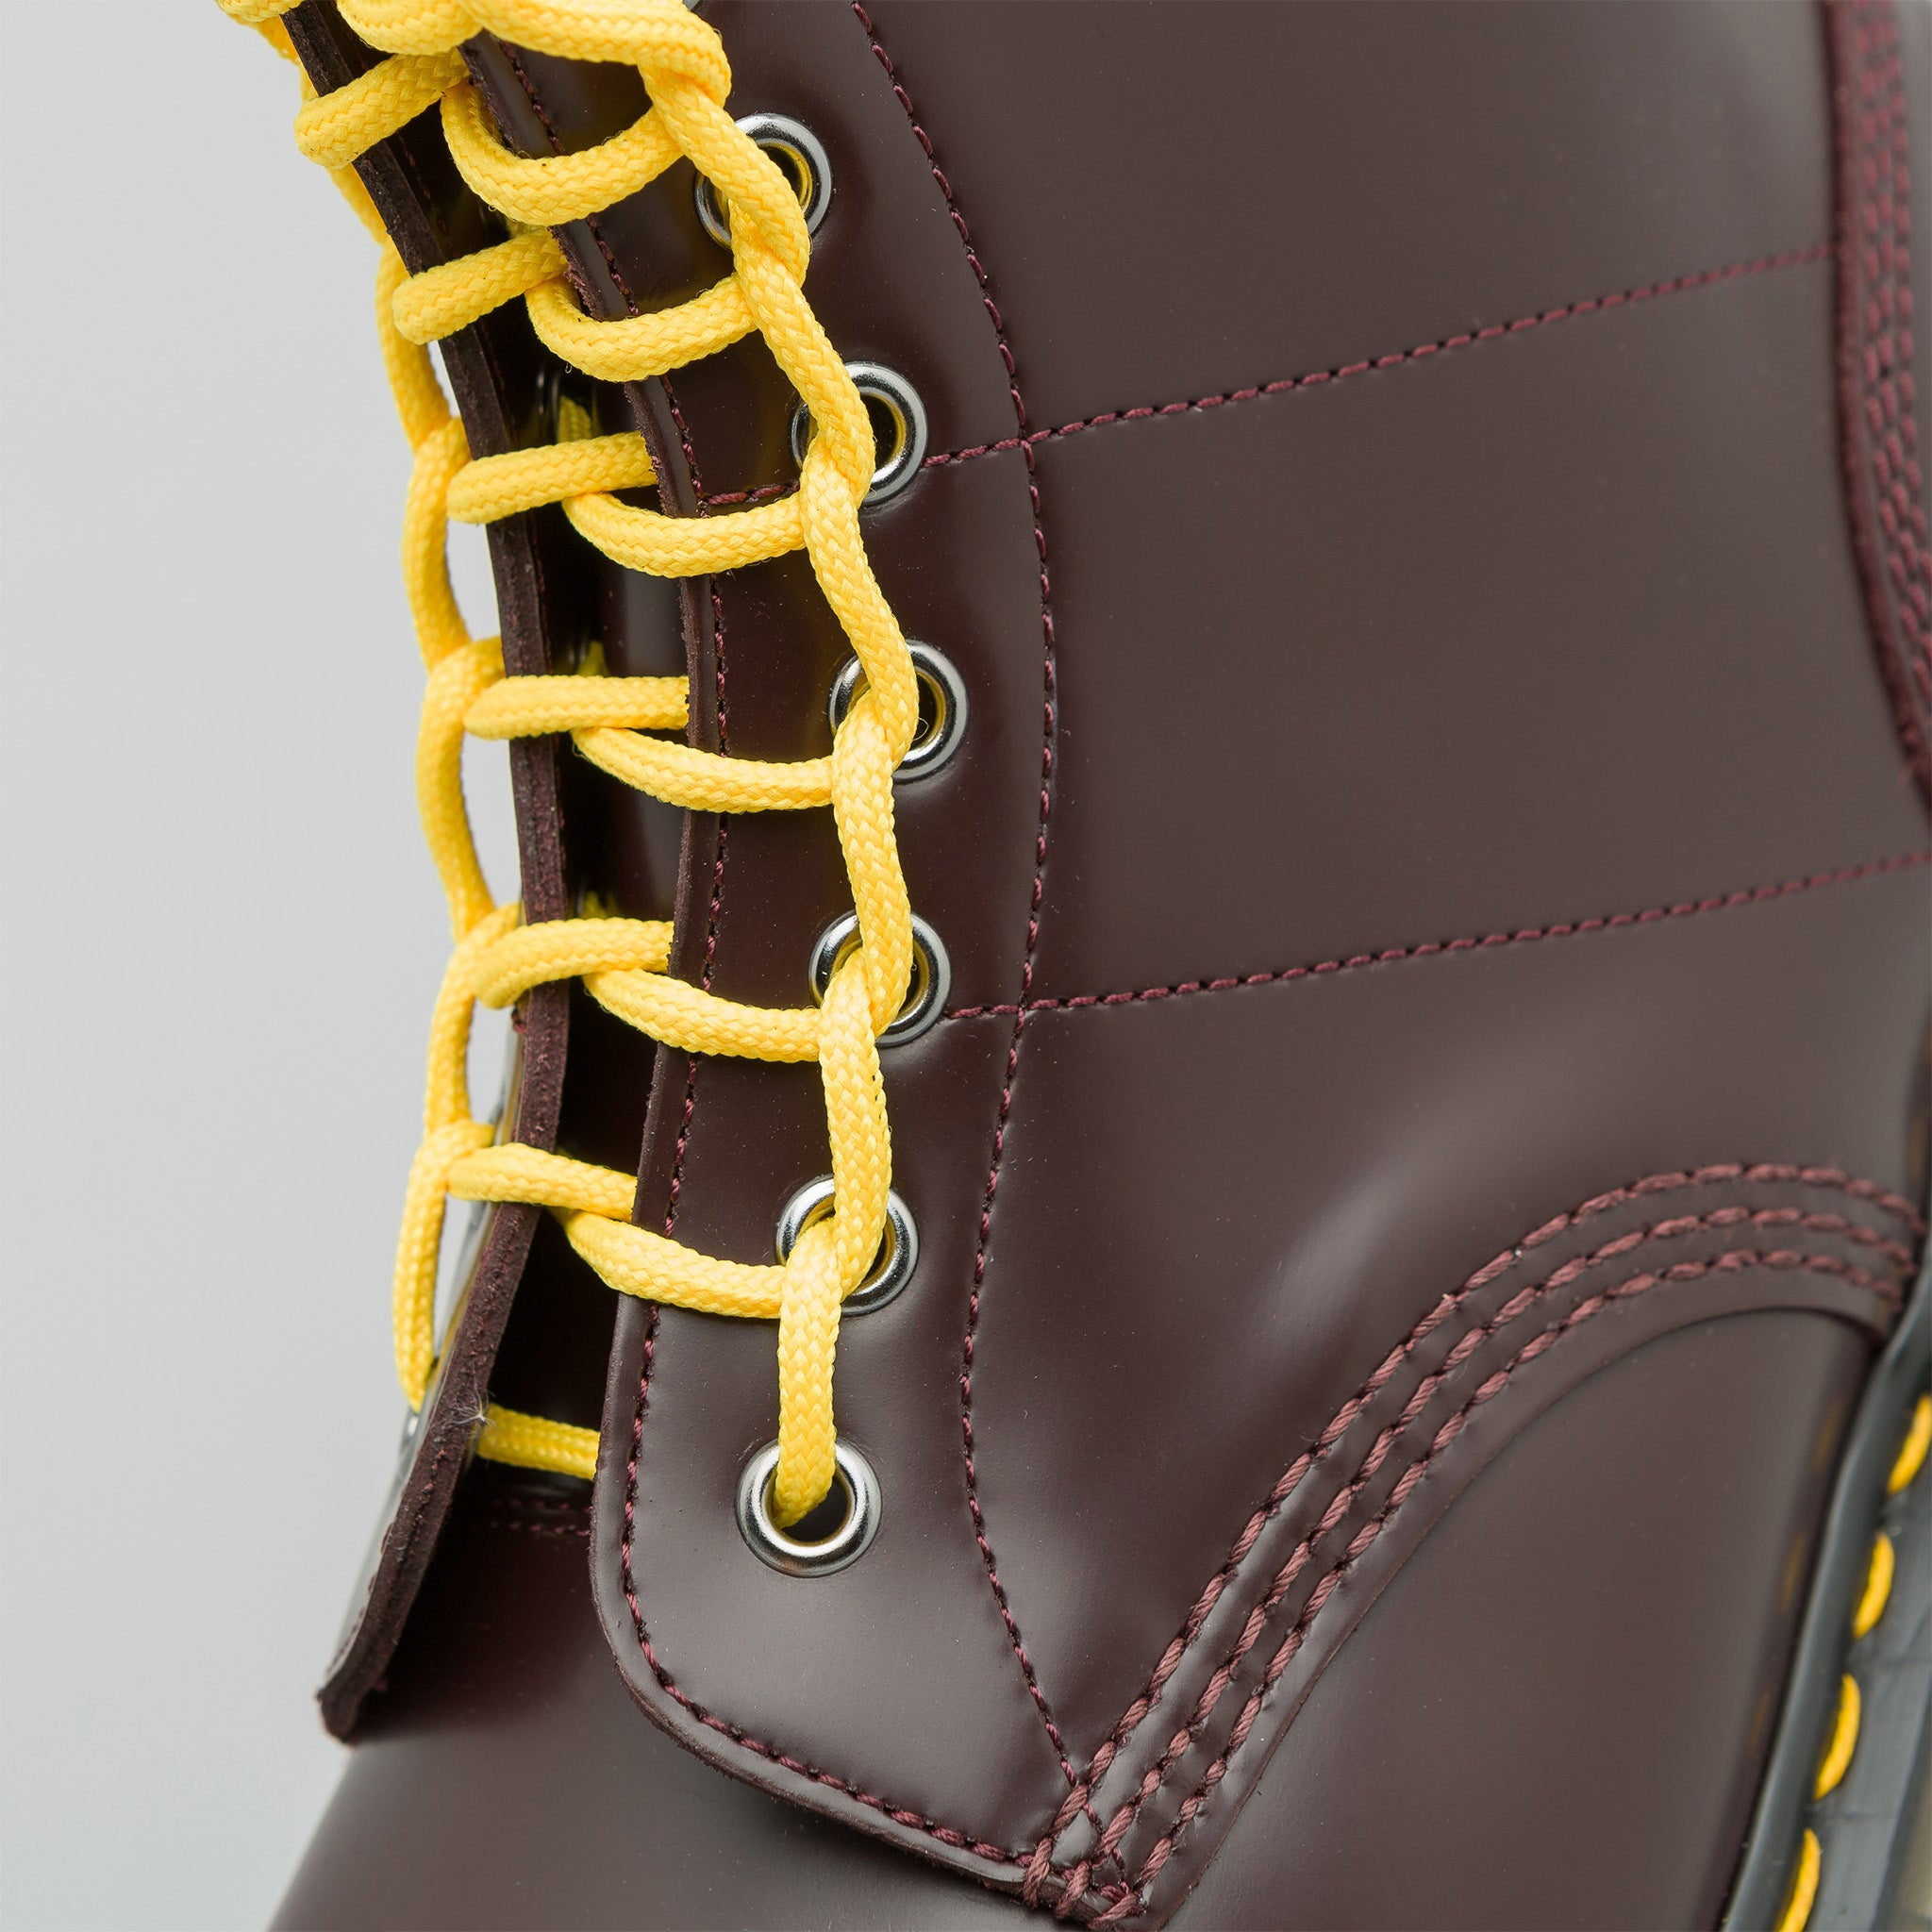 x Needles 1460 Boot in Oxblood